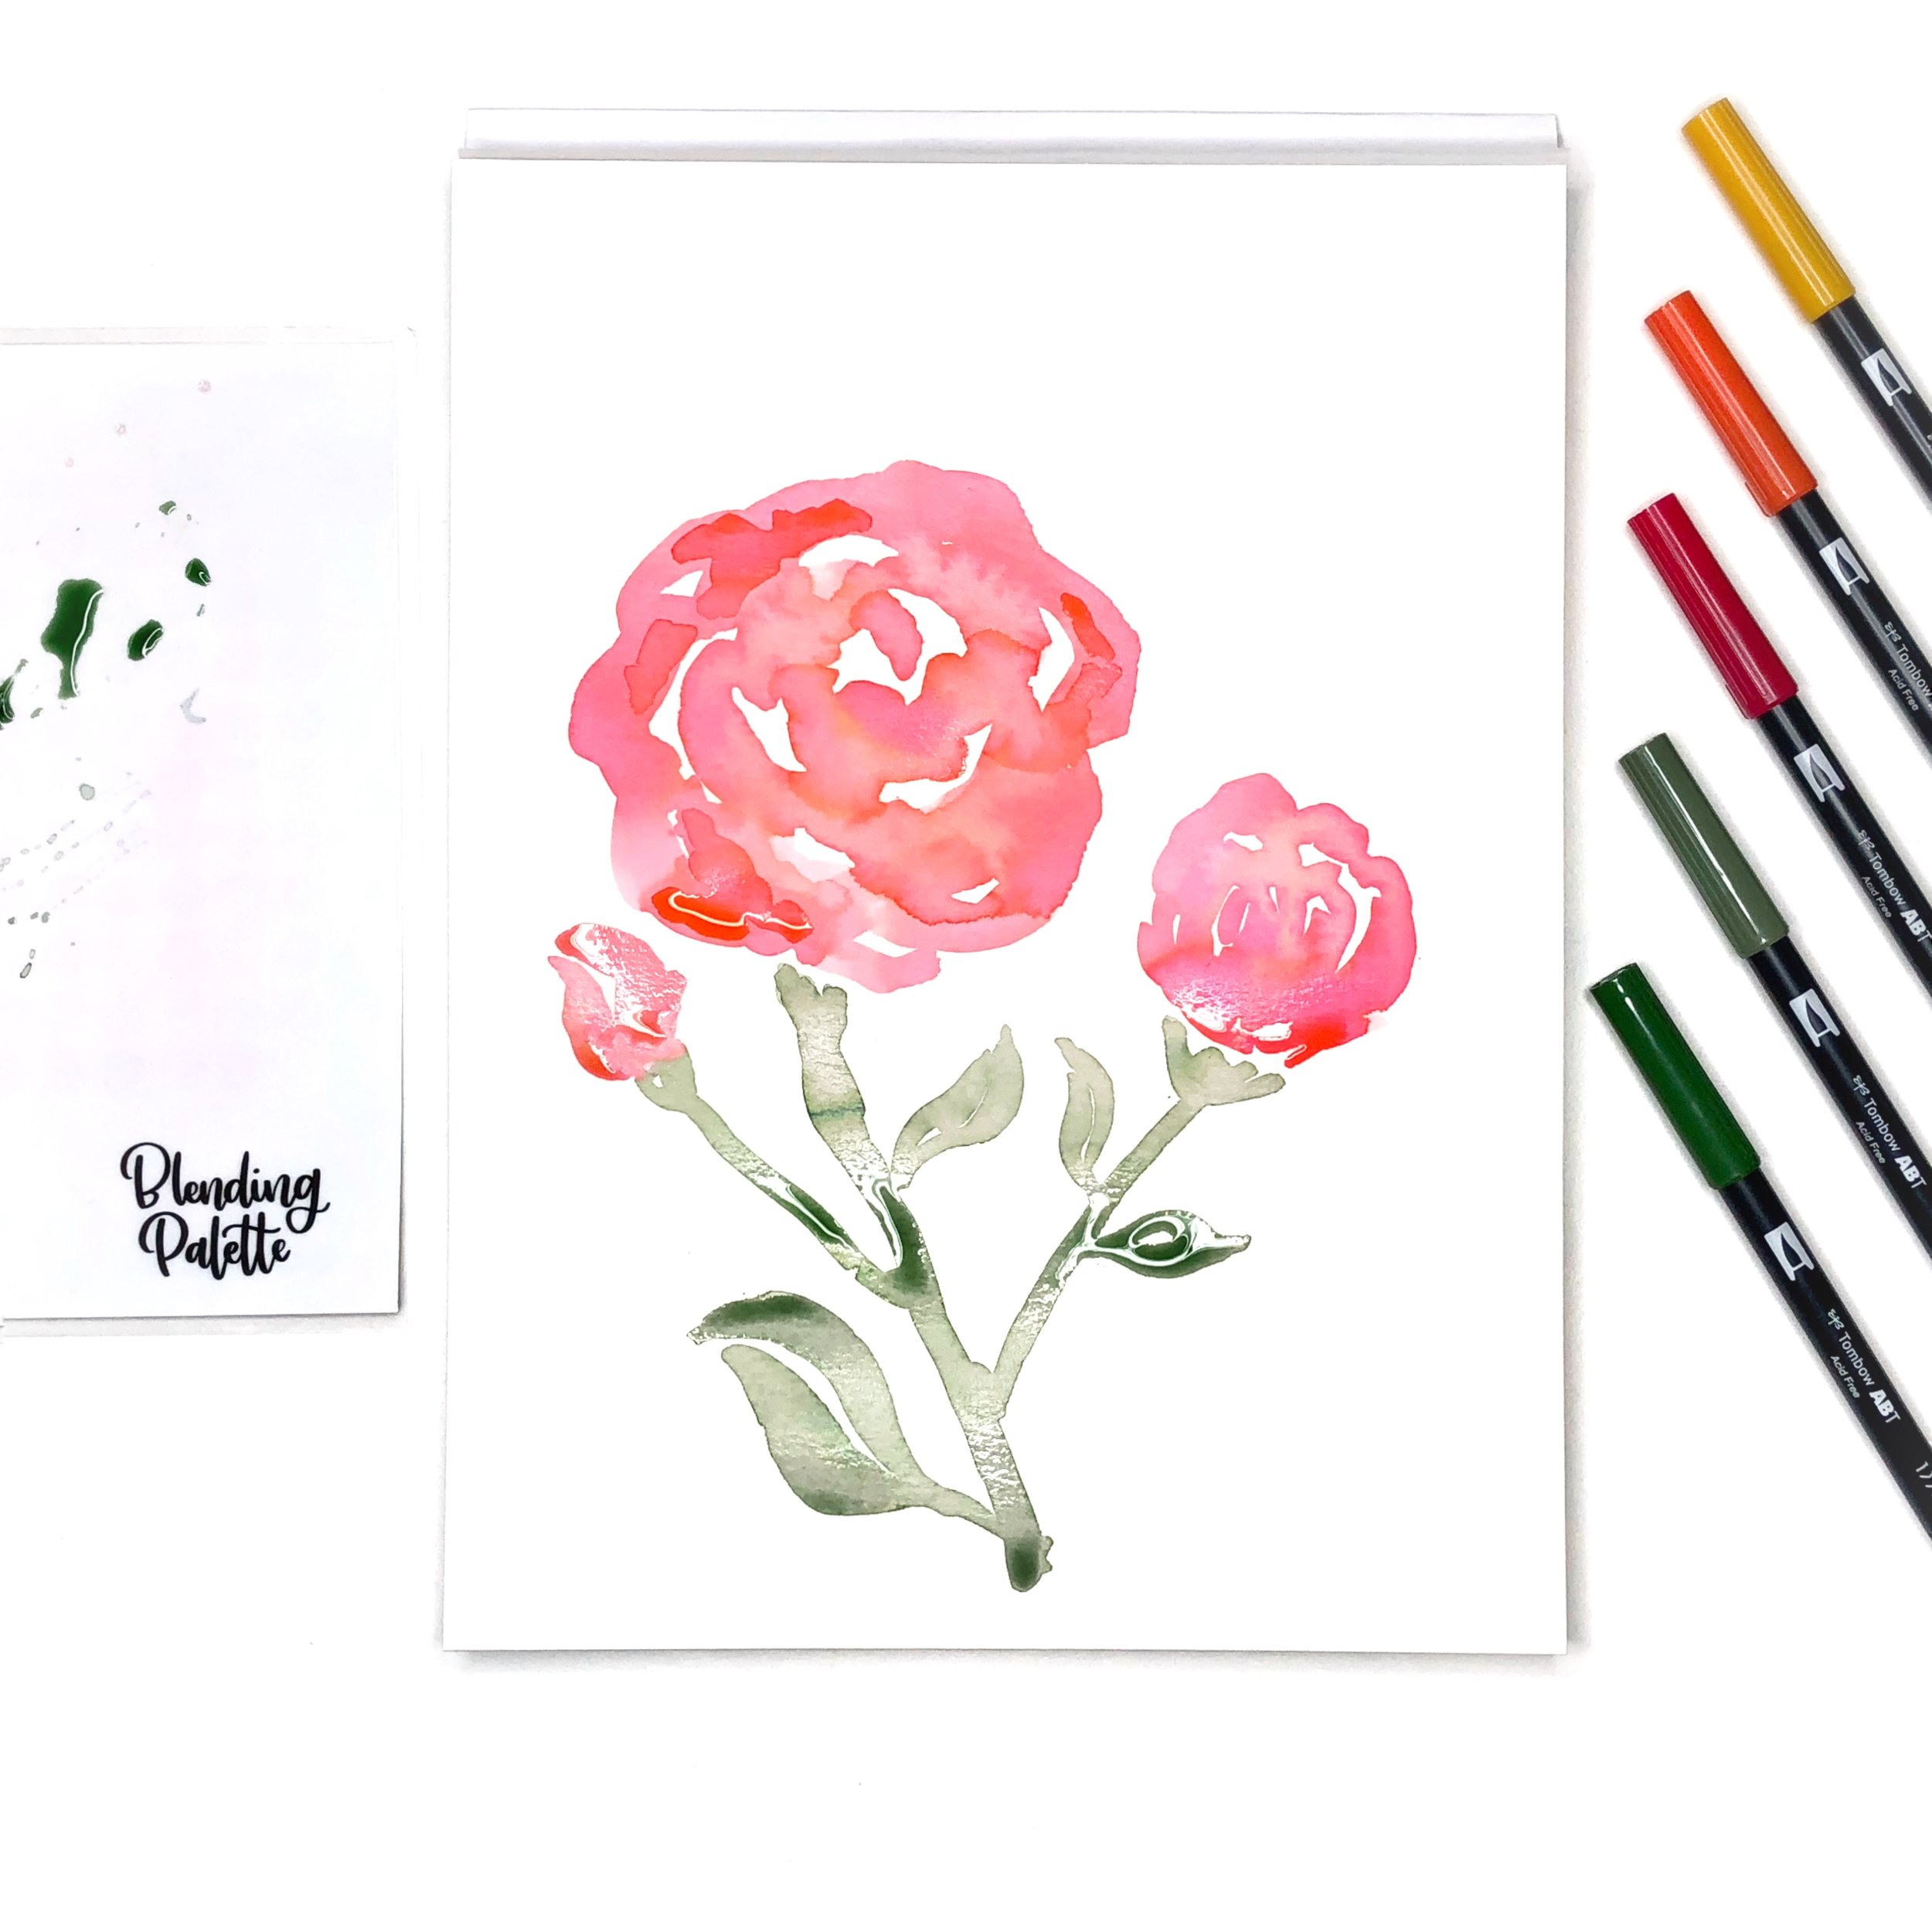 Loose Watercolor Florals in Living Coral by Jessica Mack of BrownPaperBunny